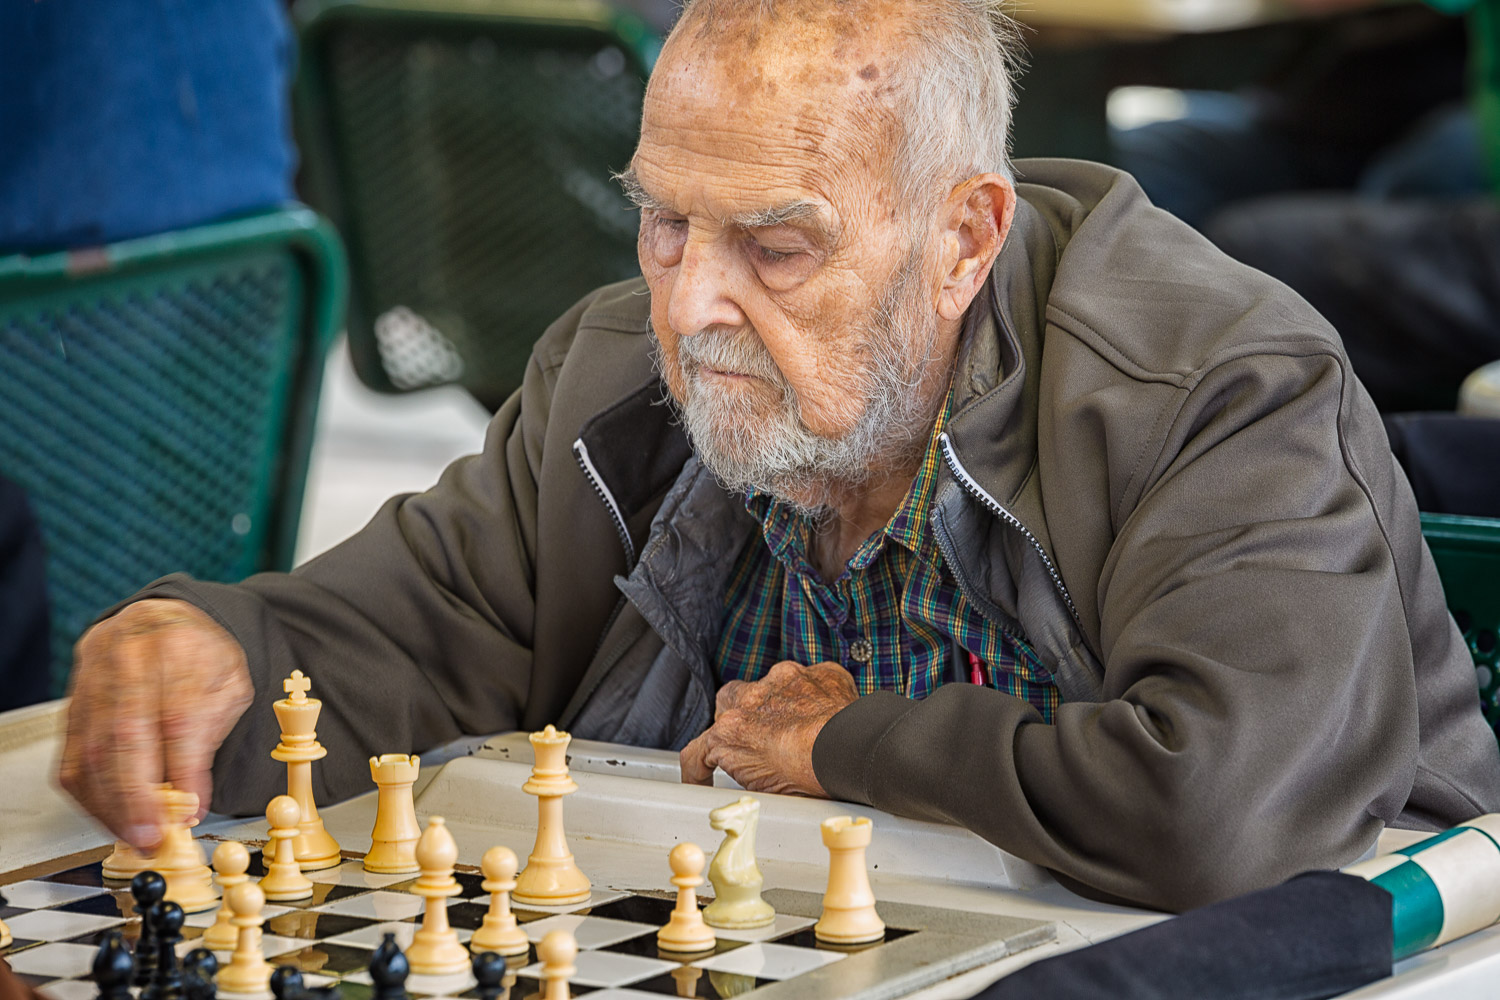 Here you can see that chess is an action sport by the motion in the man's hand.